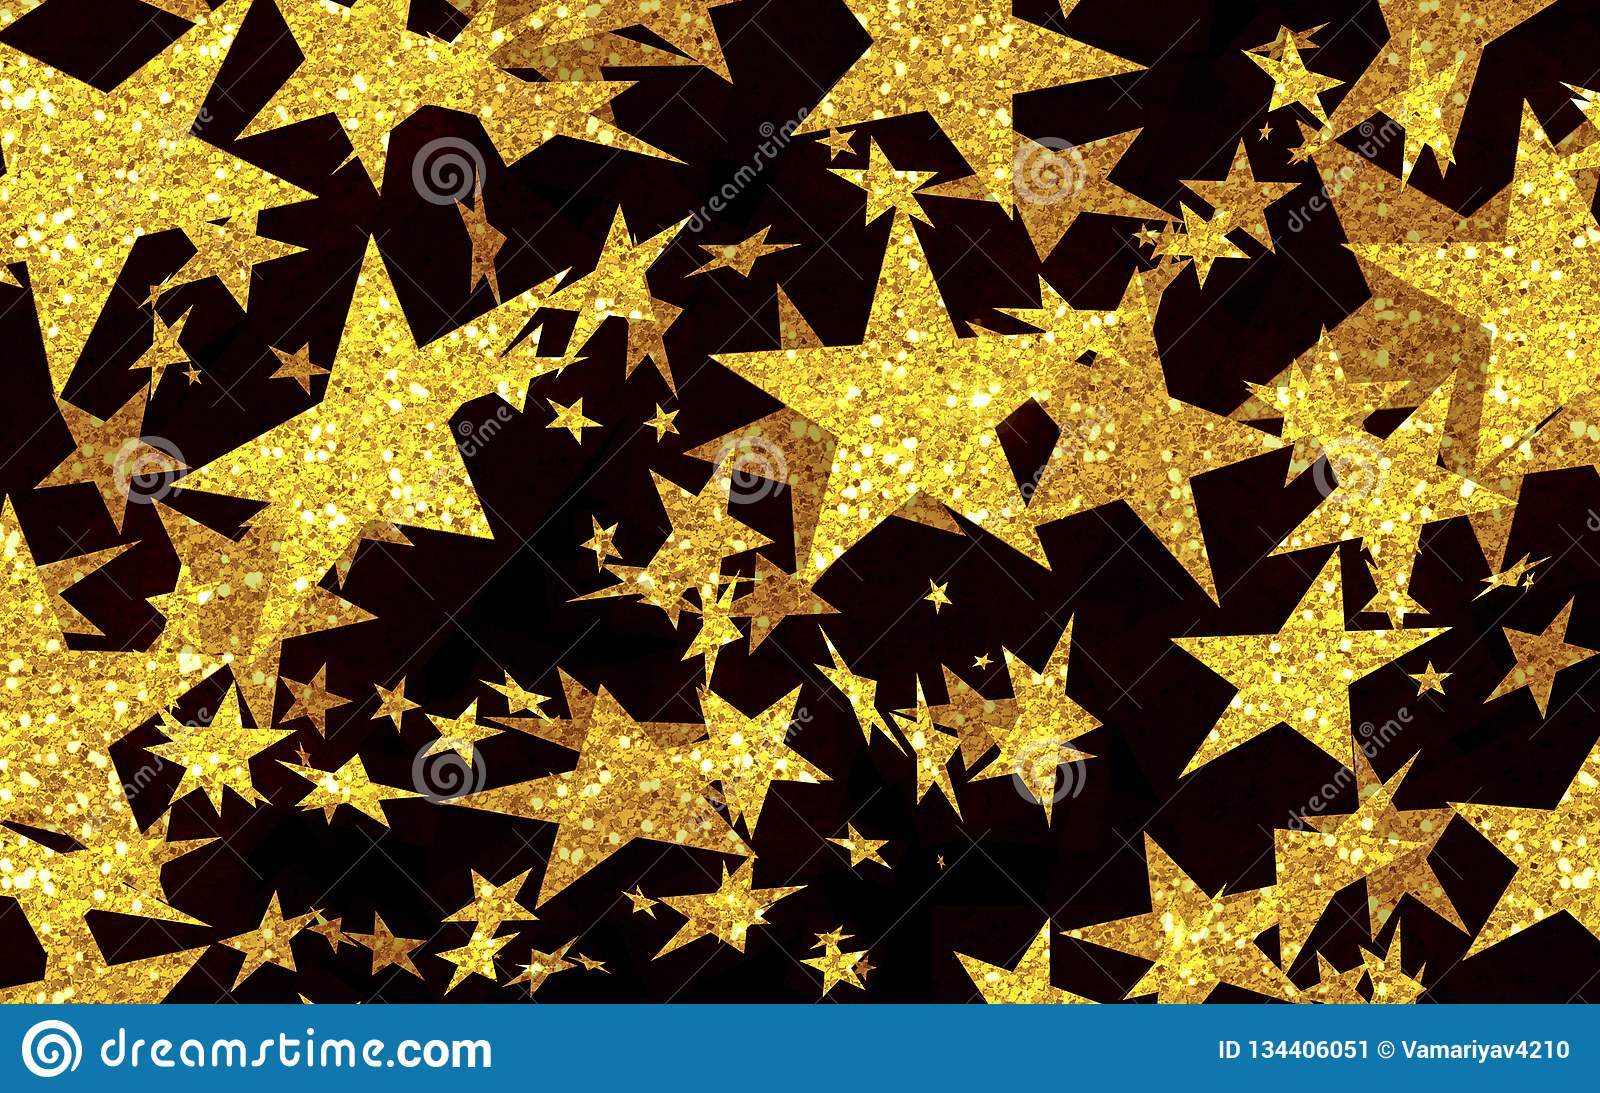 Festive Background Of Gold Stars Star Rain Shooting Stars